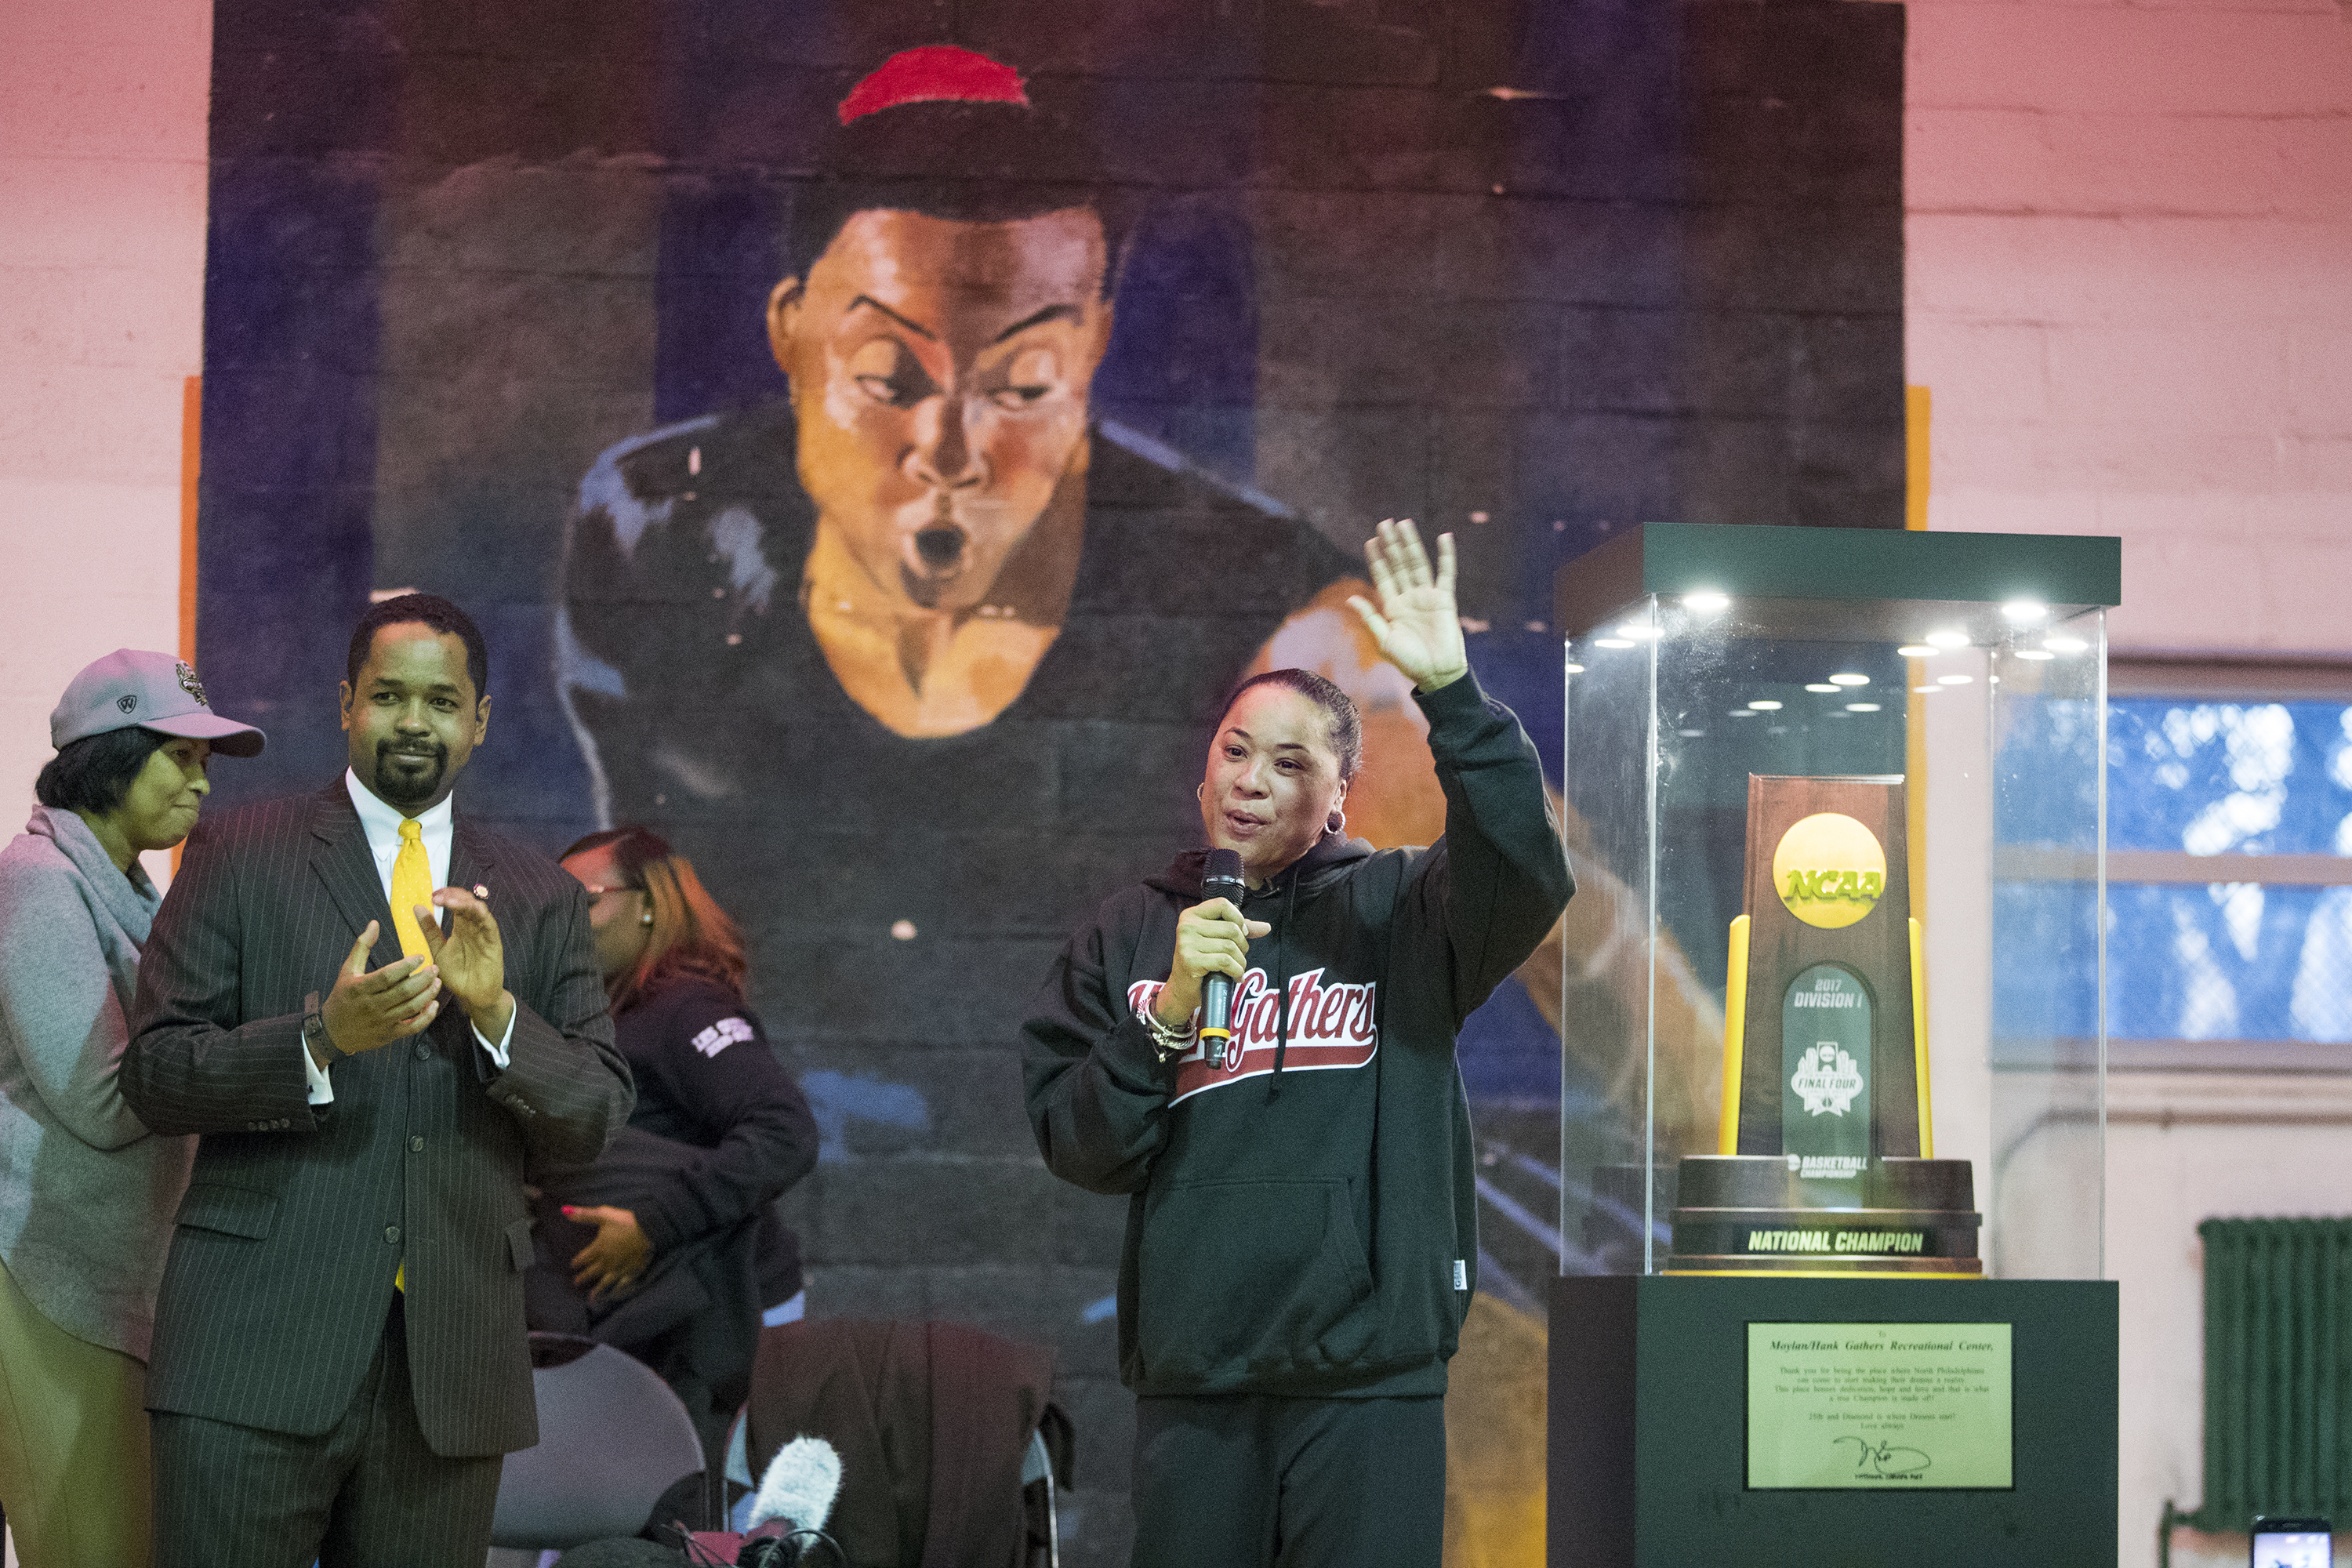 Dawn Staley waves to the crowd after a replica of the NCAA National Championship trophy was donated to the Hank Gathers Recreation Center on Dec. 20, 2017. Her national chmpionship South Carolina team will play Temple tomorrow. CHARLES FOX / Staff Photographer